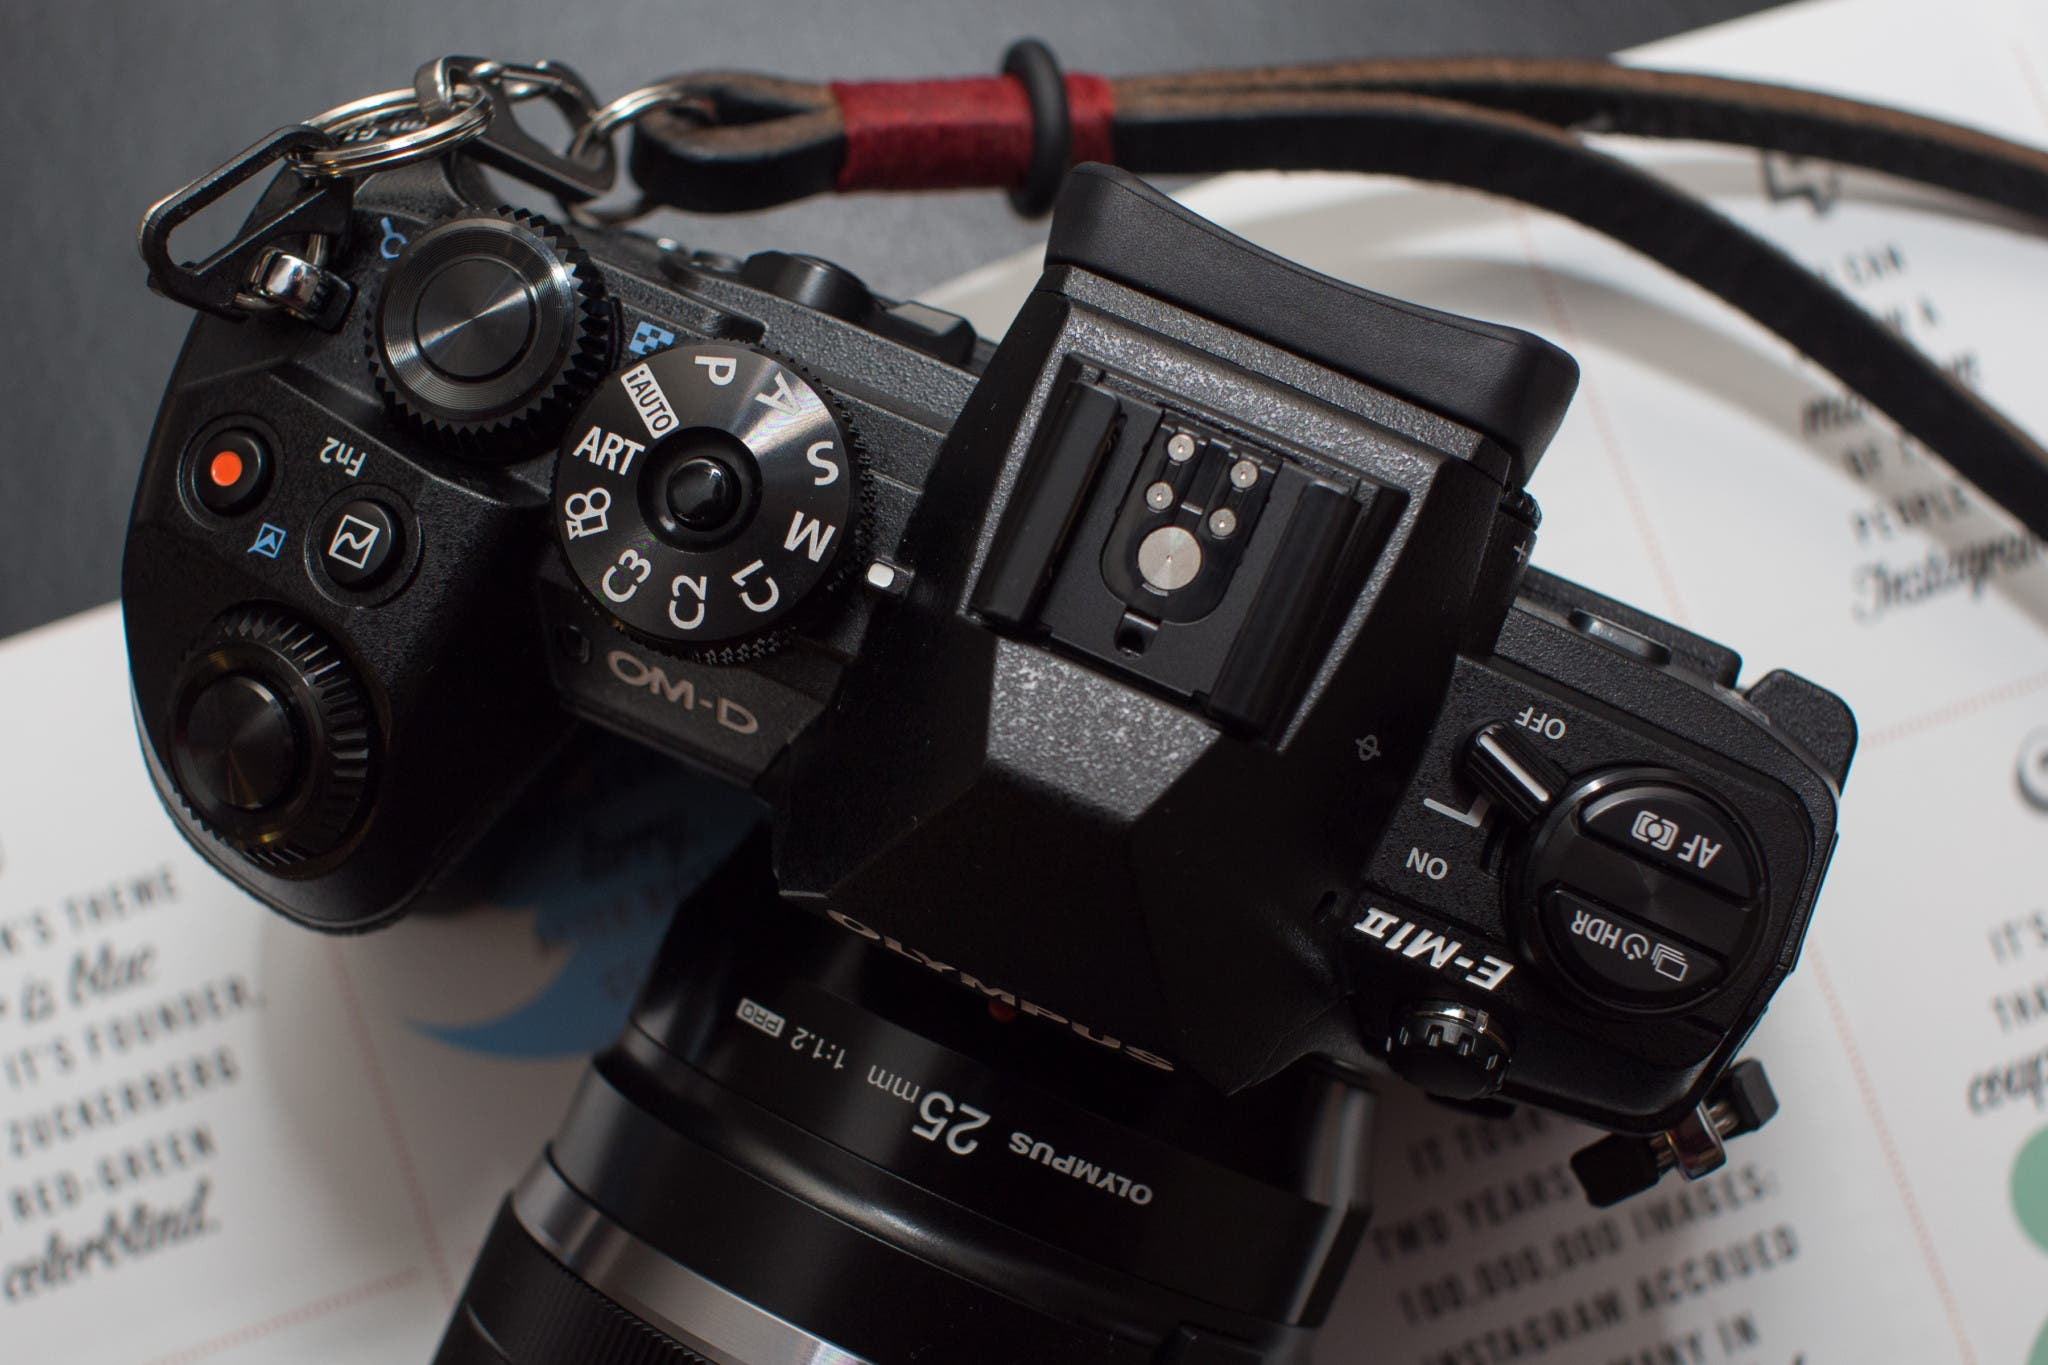 Will The Olympus OMD EM1 Mk II Survive Being Under a Running Faucet?